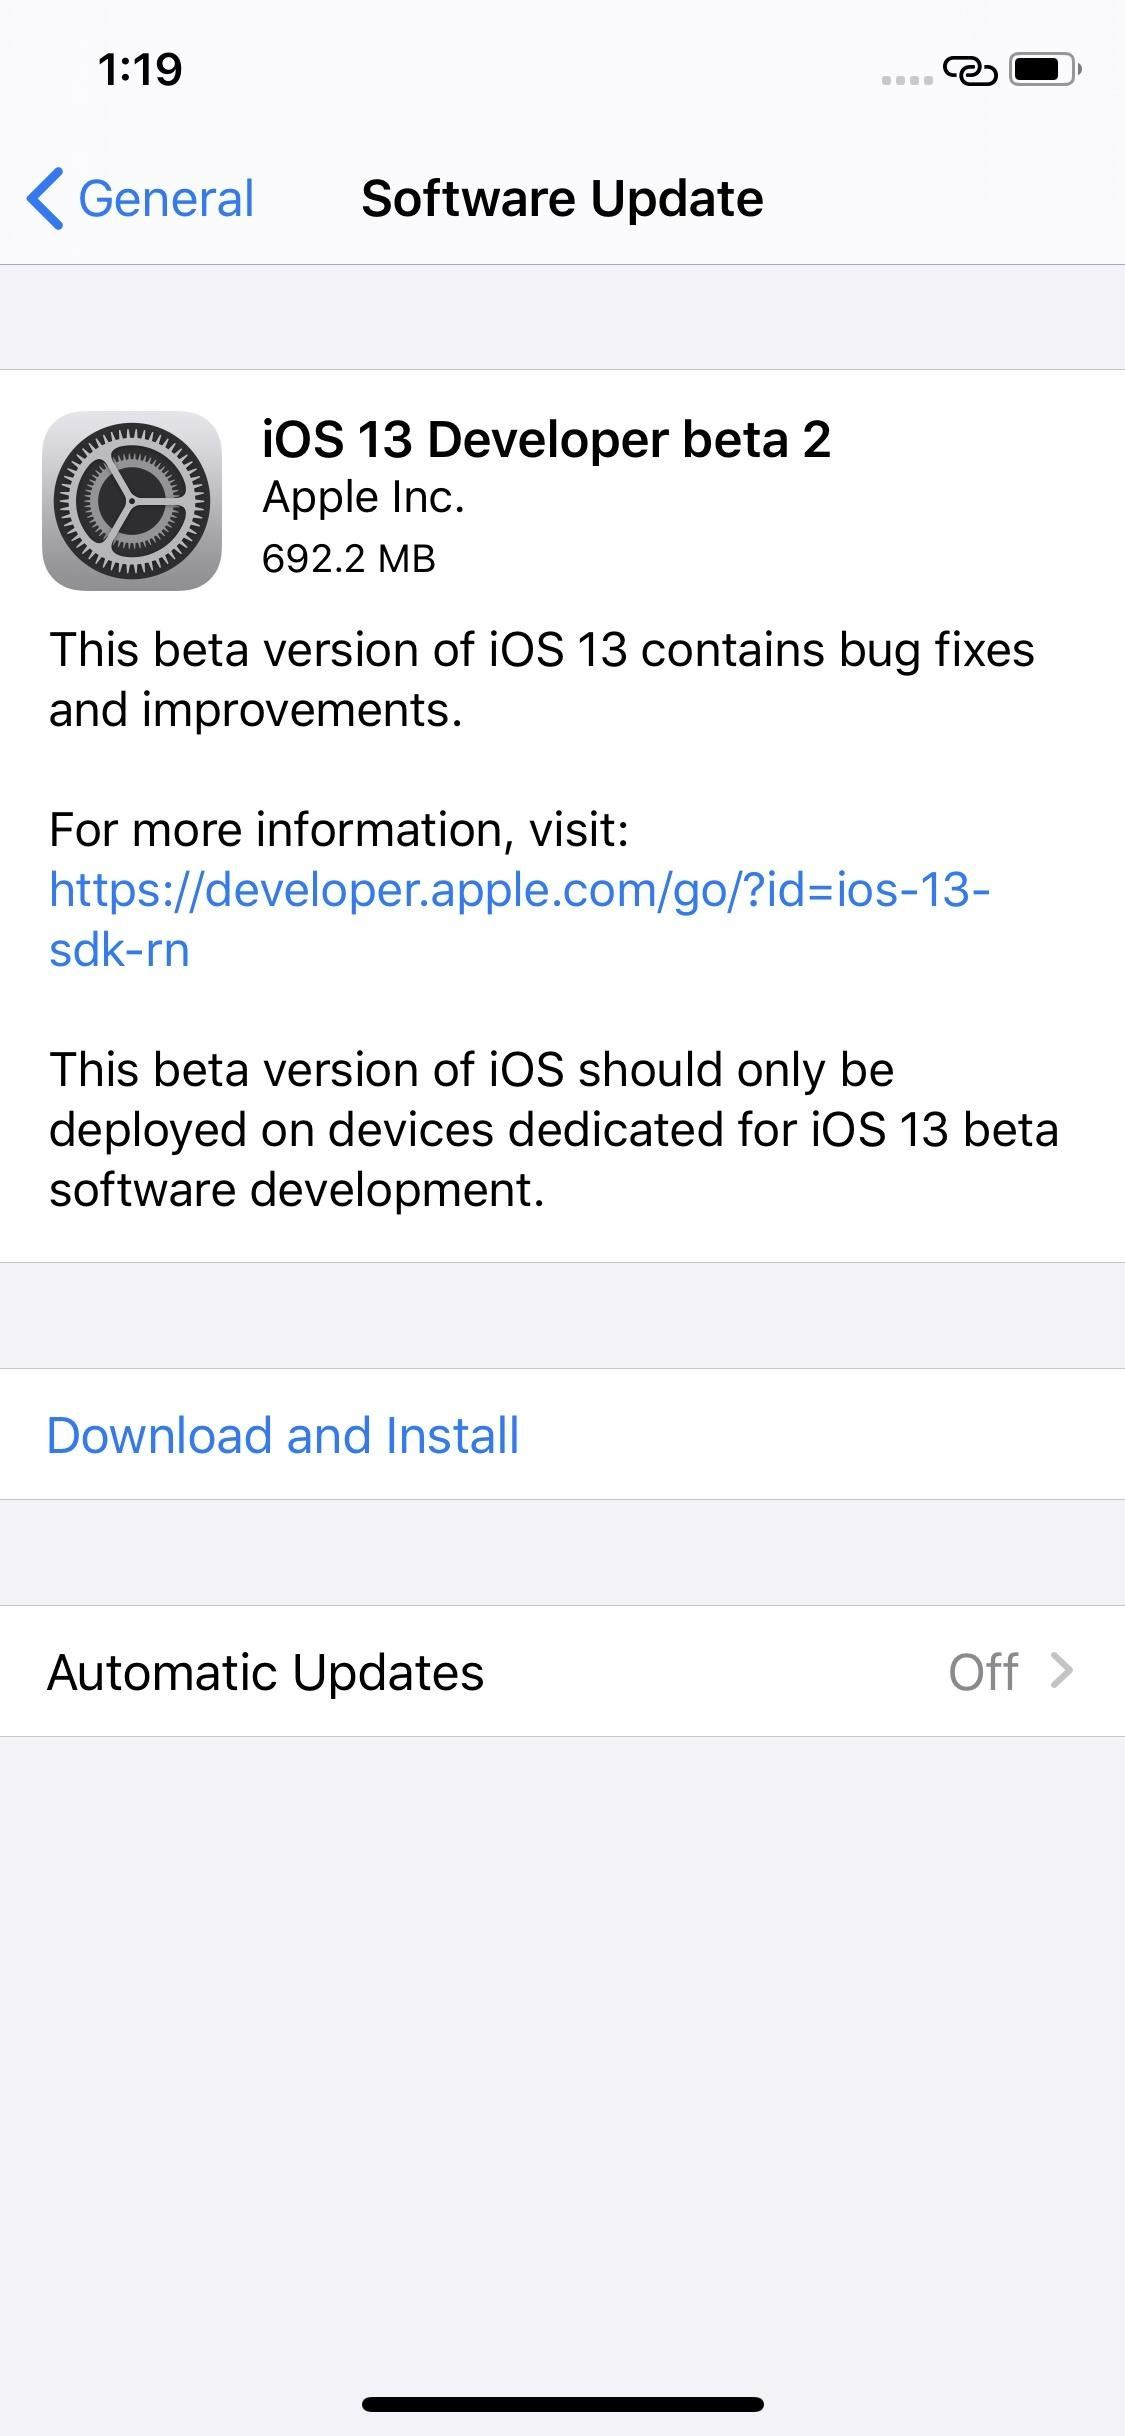 Apple Releases iOS 13 Developer Beta 2 with Config Profile OTAs, Plus Controls & New Effect for Portrait Lighting